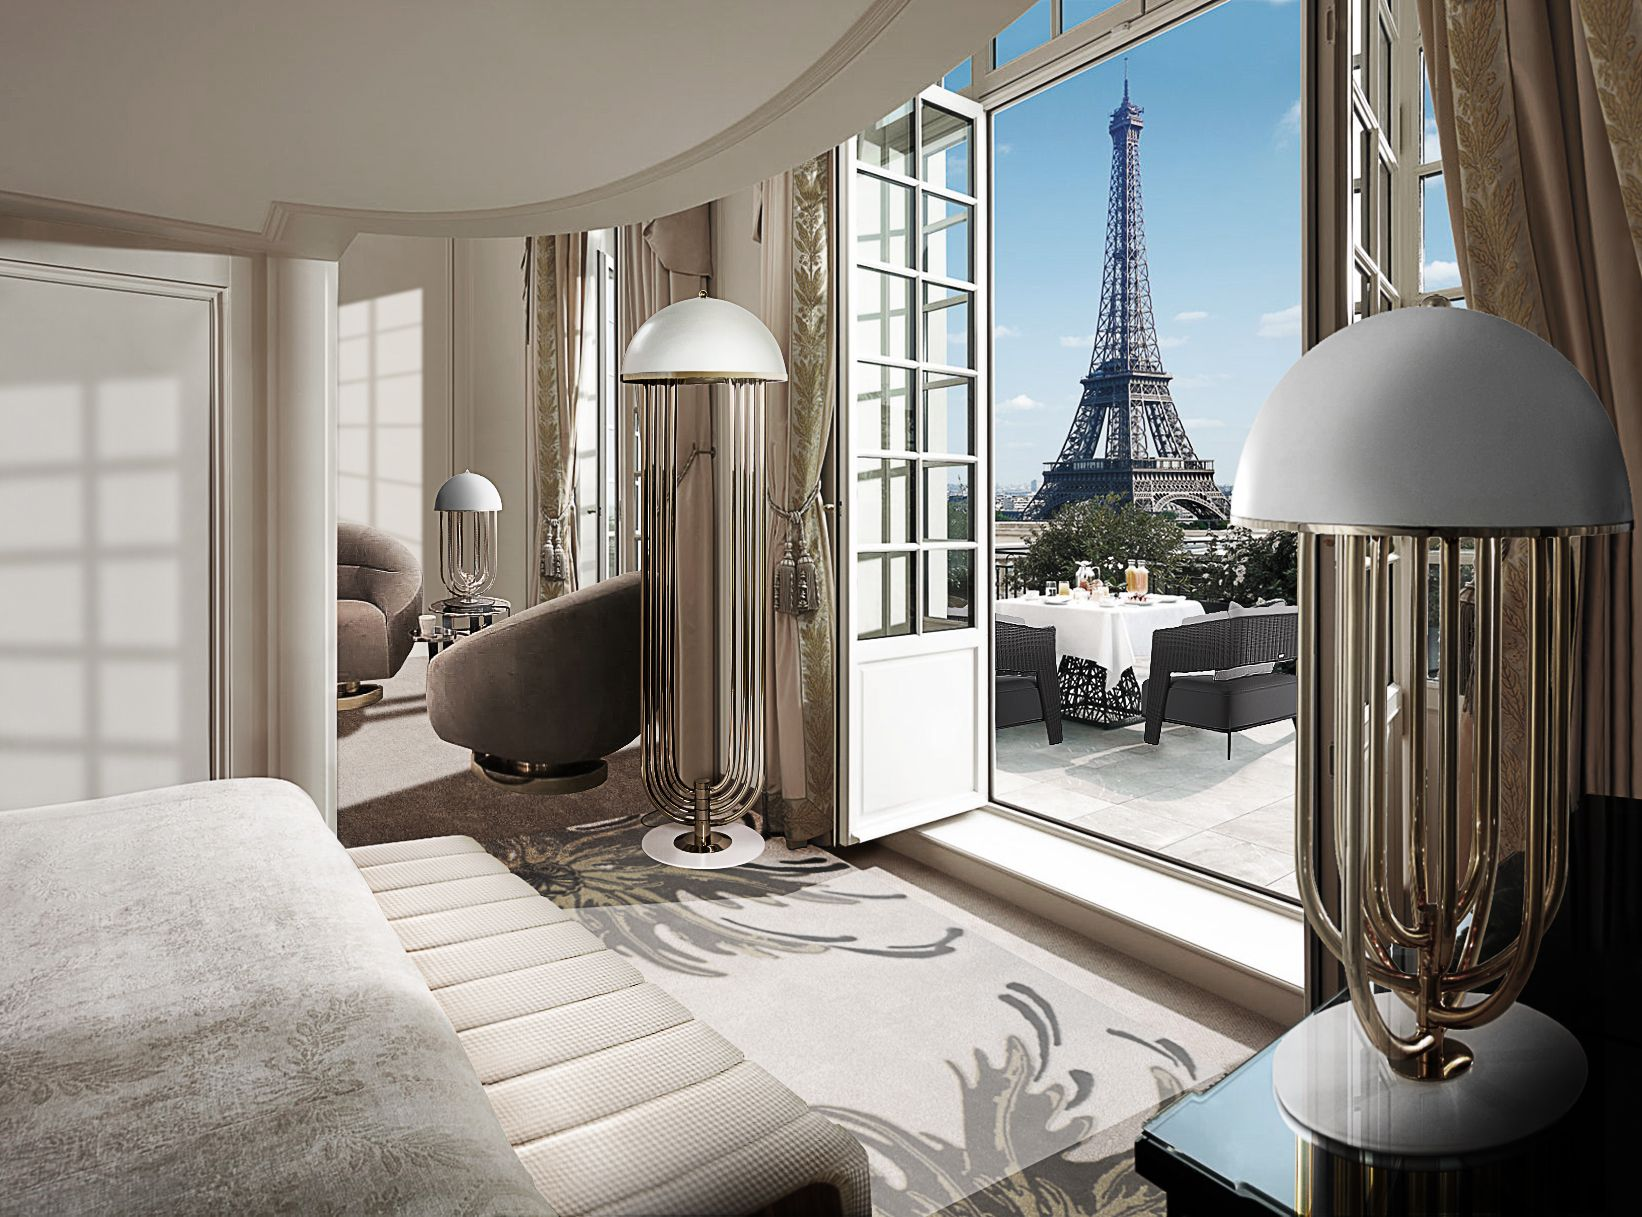 bedroom design inspiration- room with a view